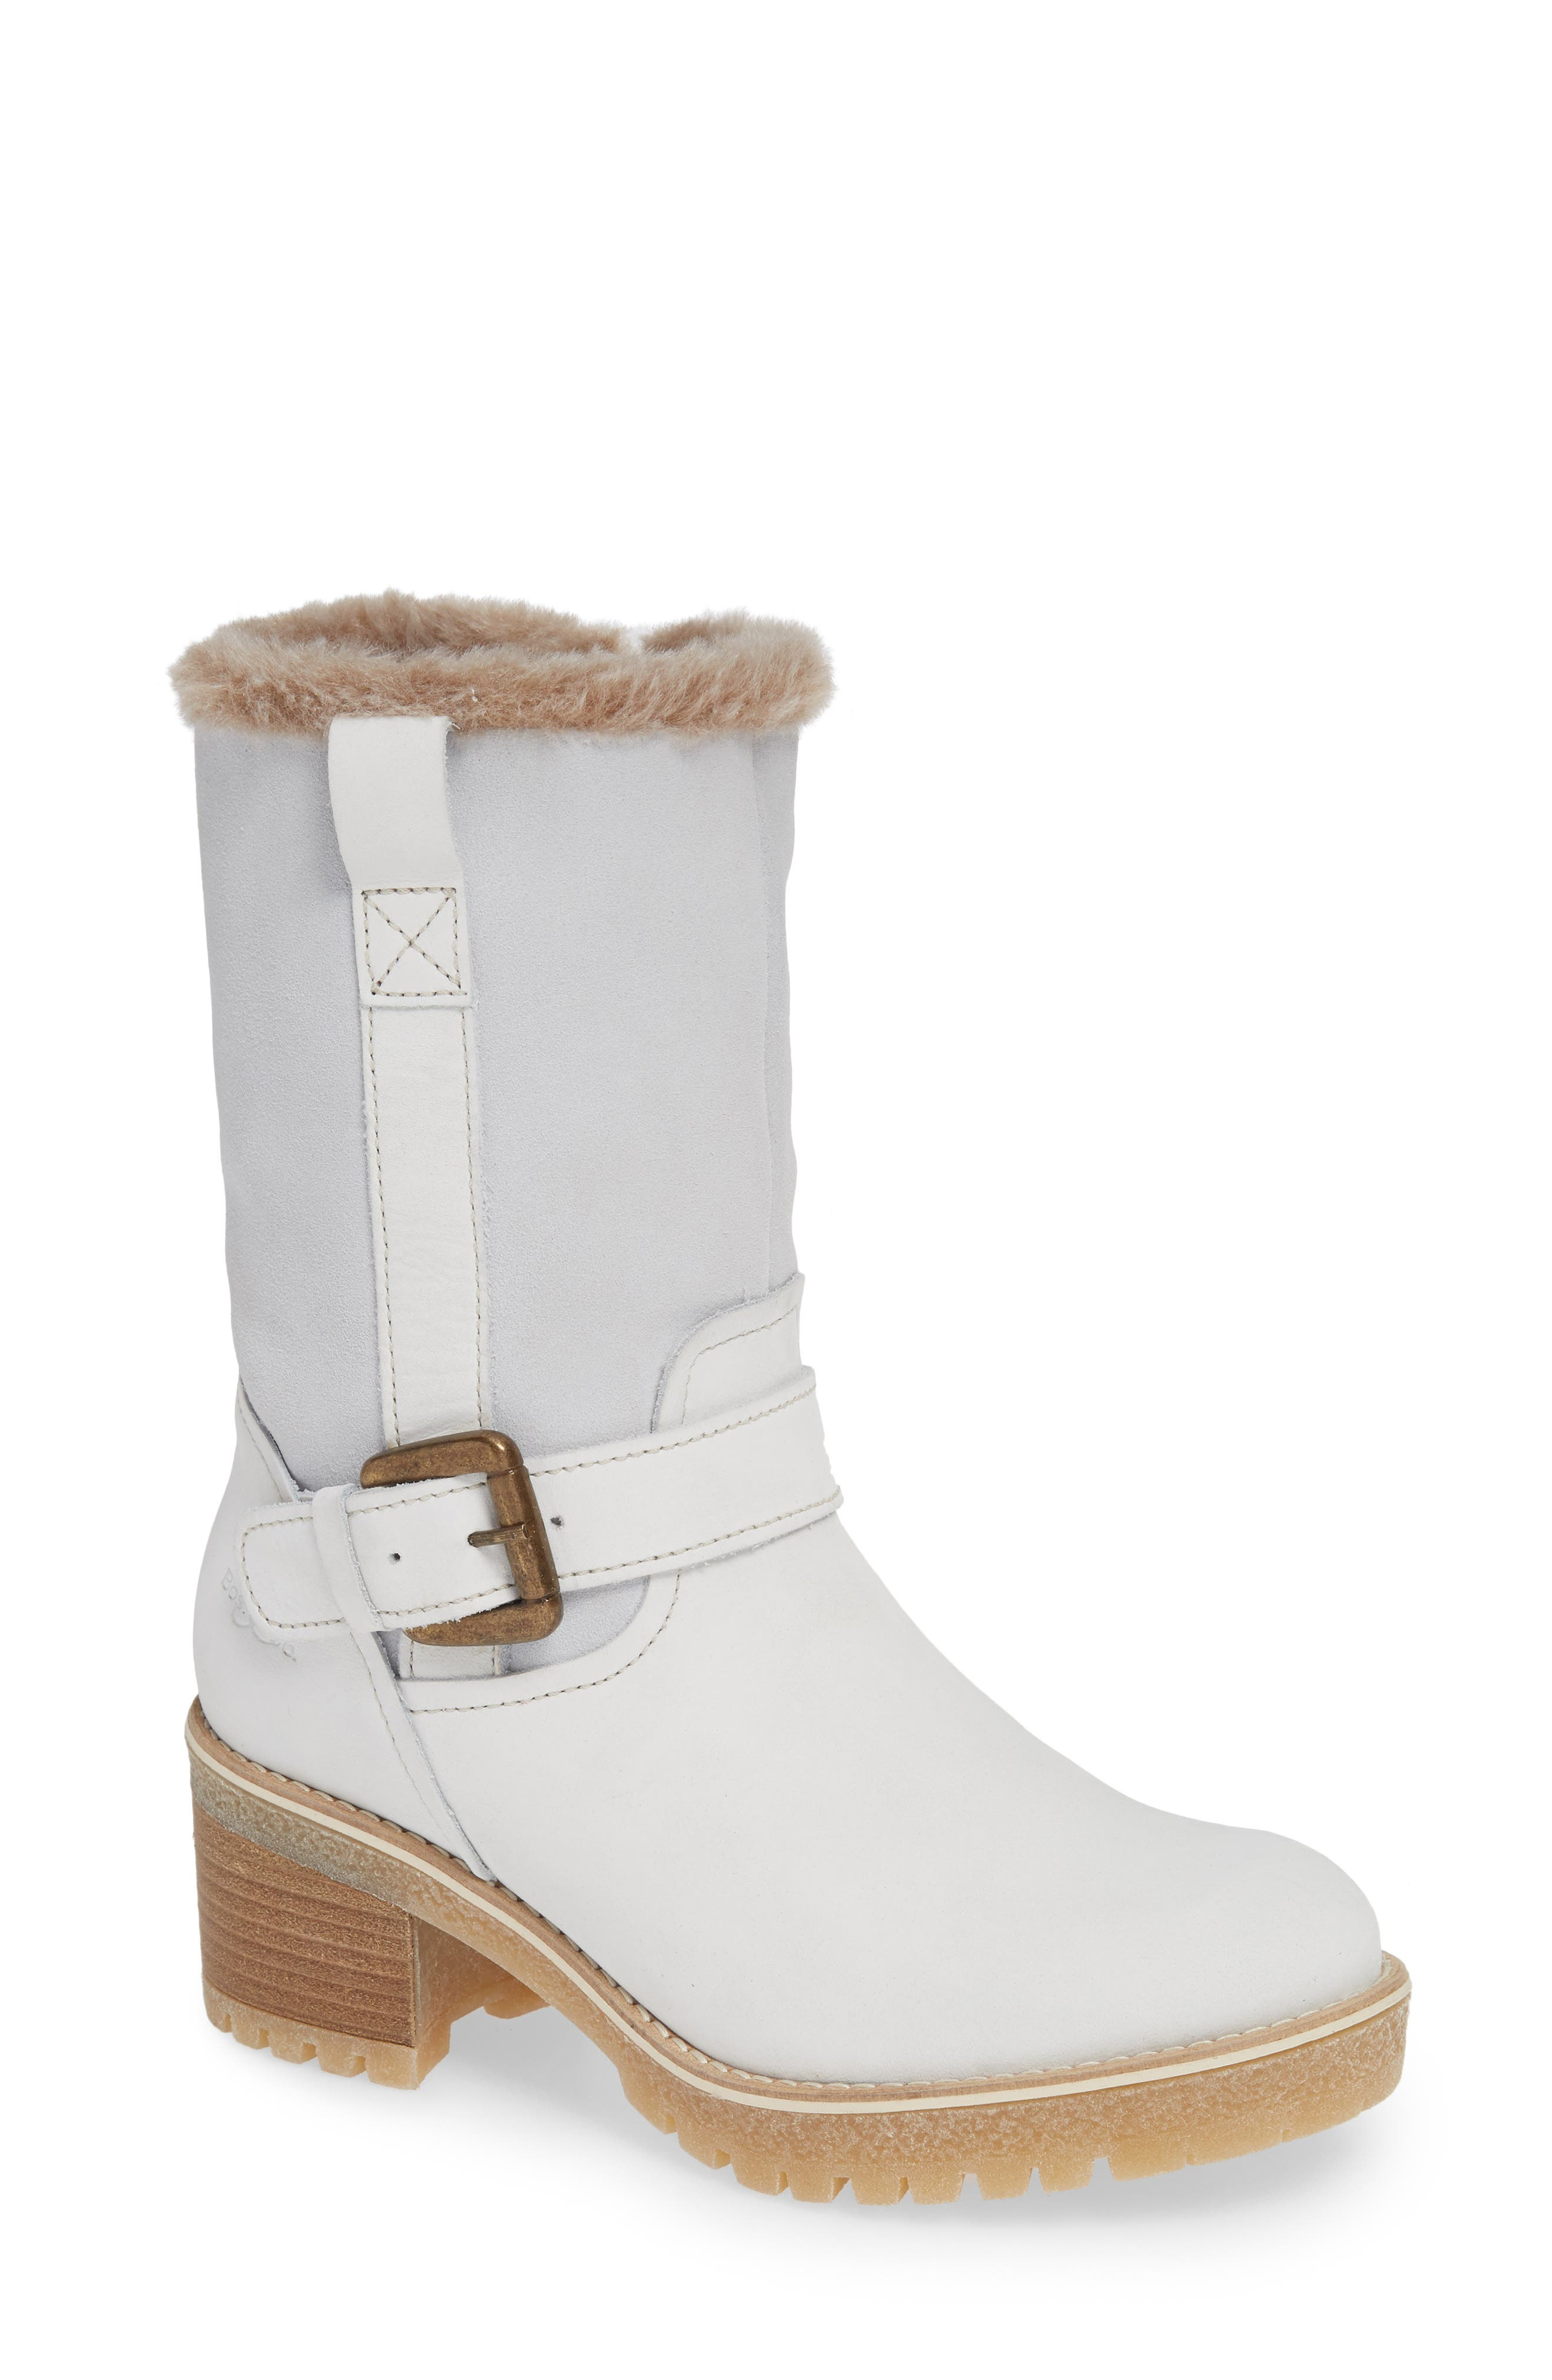 Bos. & Co. Maine Waterproof Boot, White